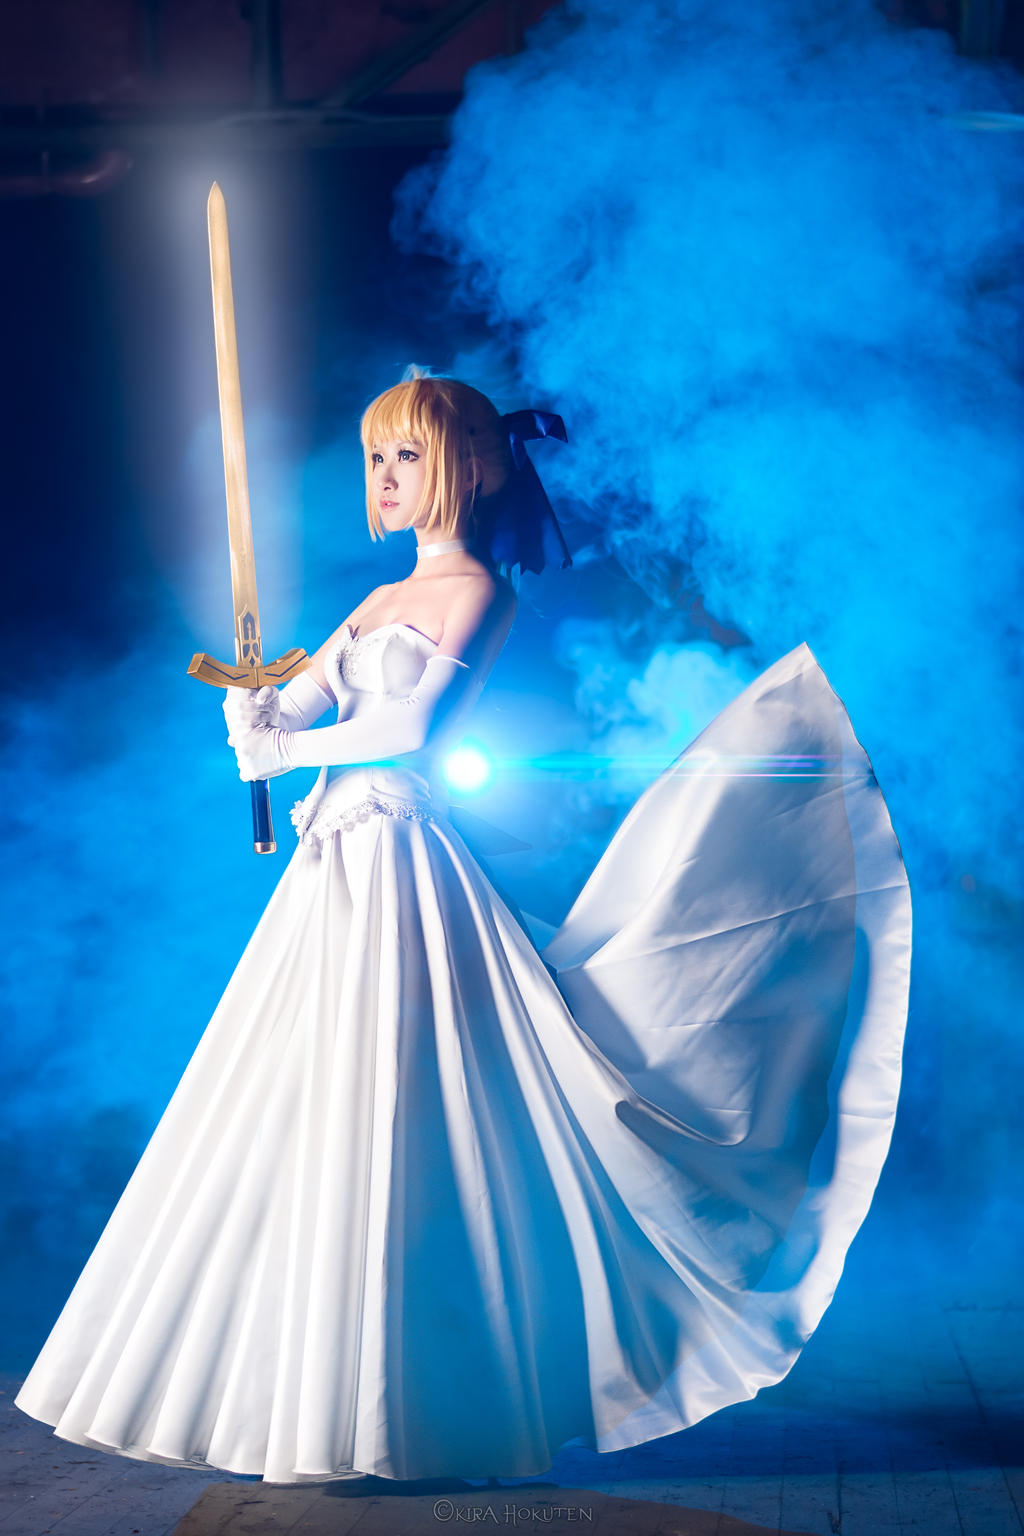 saber wedding dress by kirahokuten on deviantart